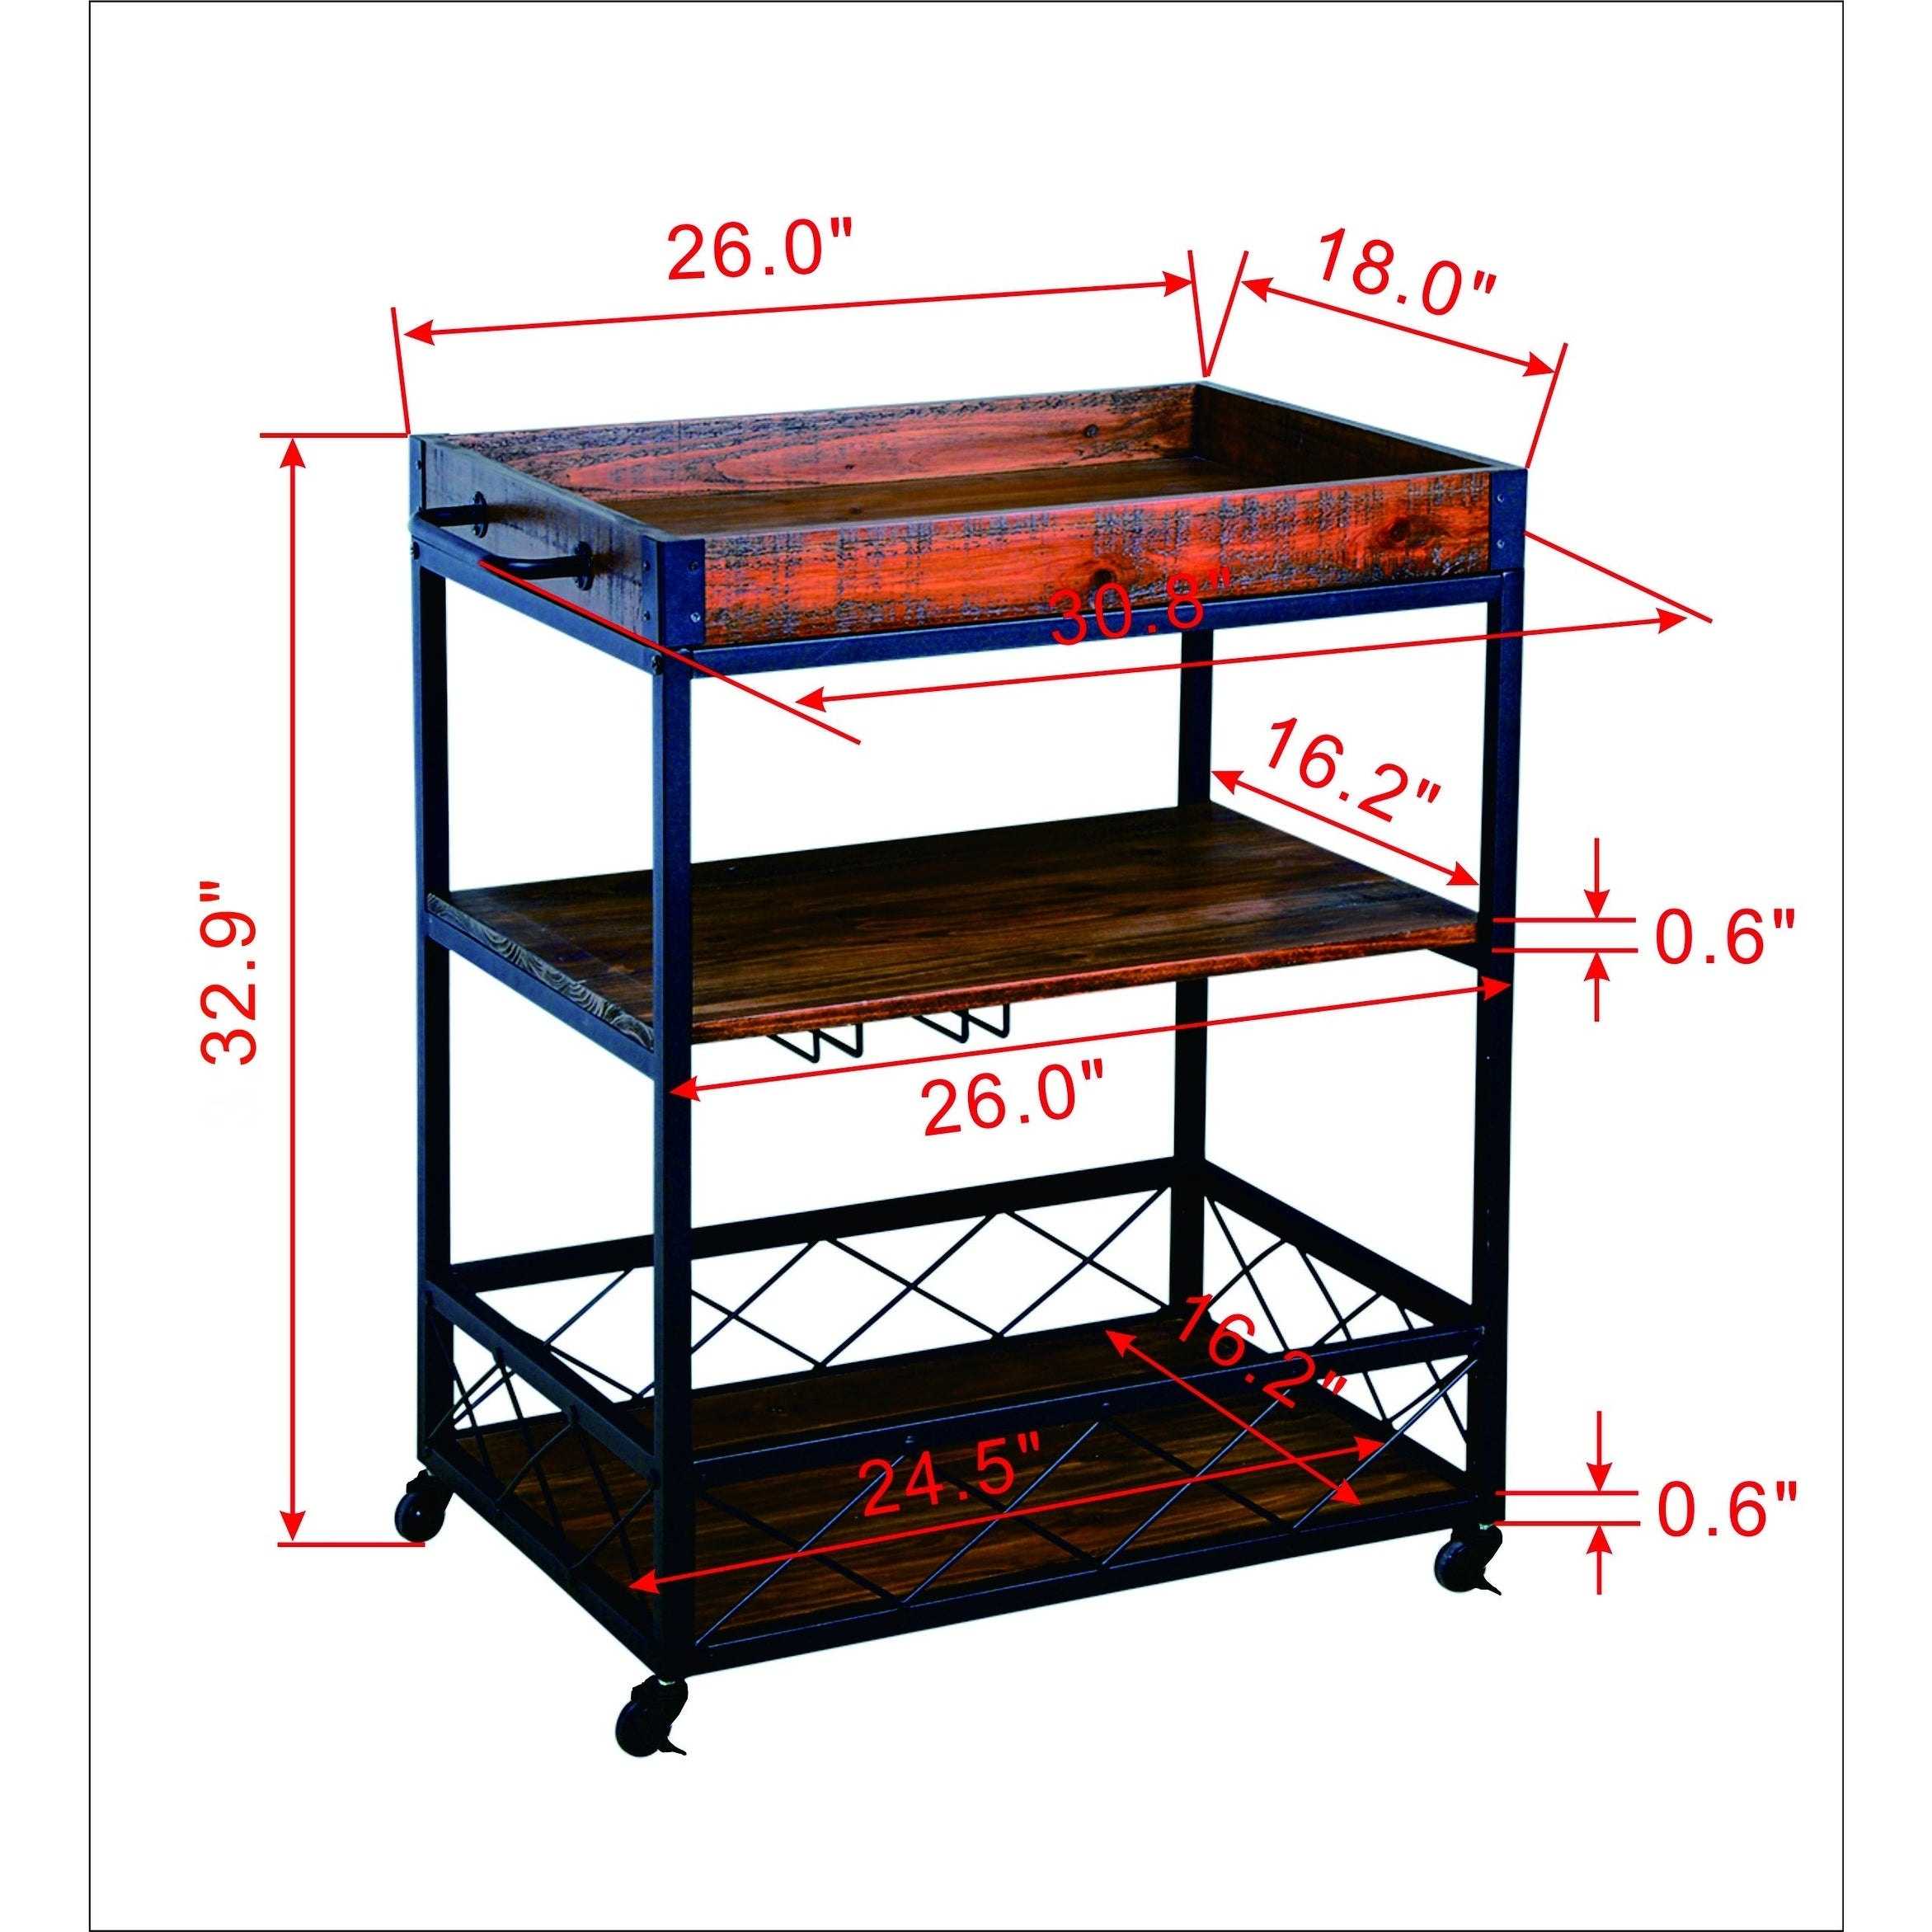 Rustic Industrial Bar Cart With Removable Top Tray Space Saving Design Overstock 21443812